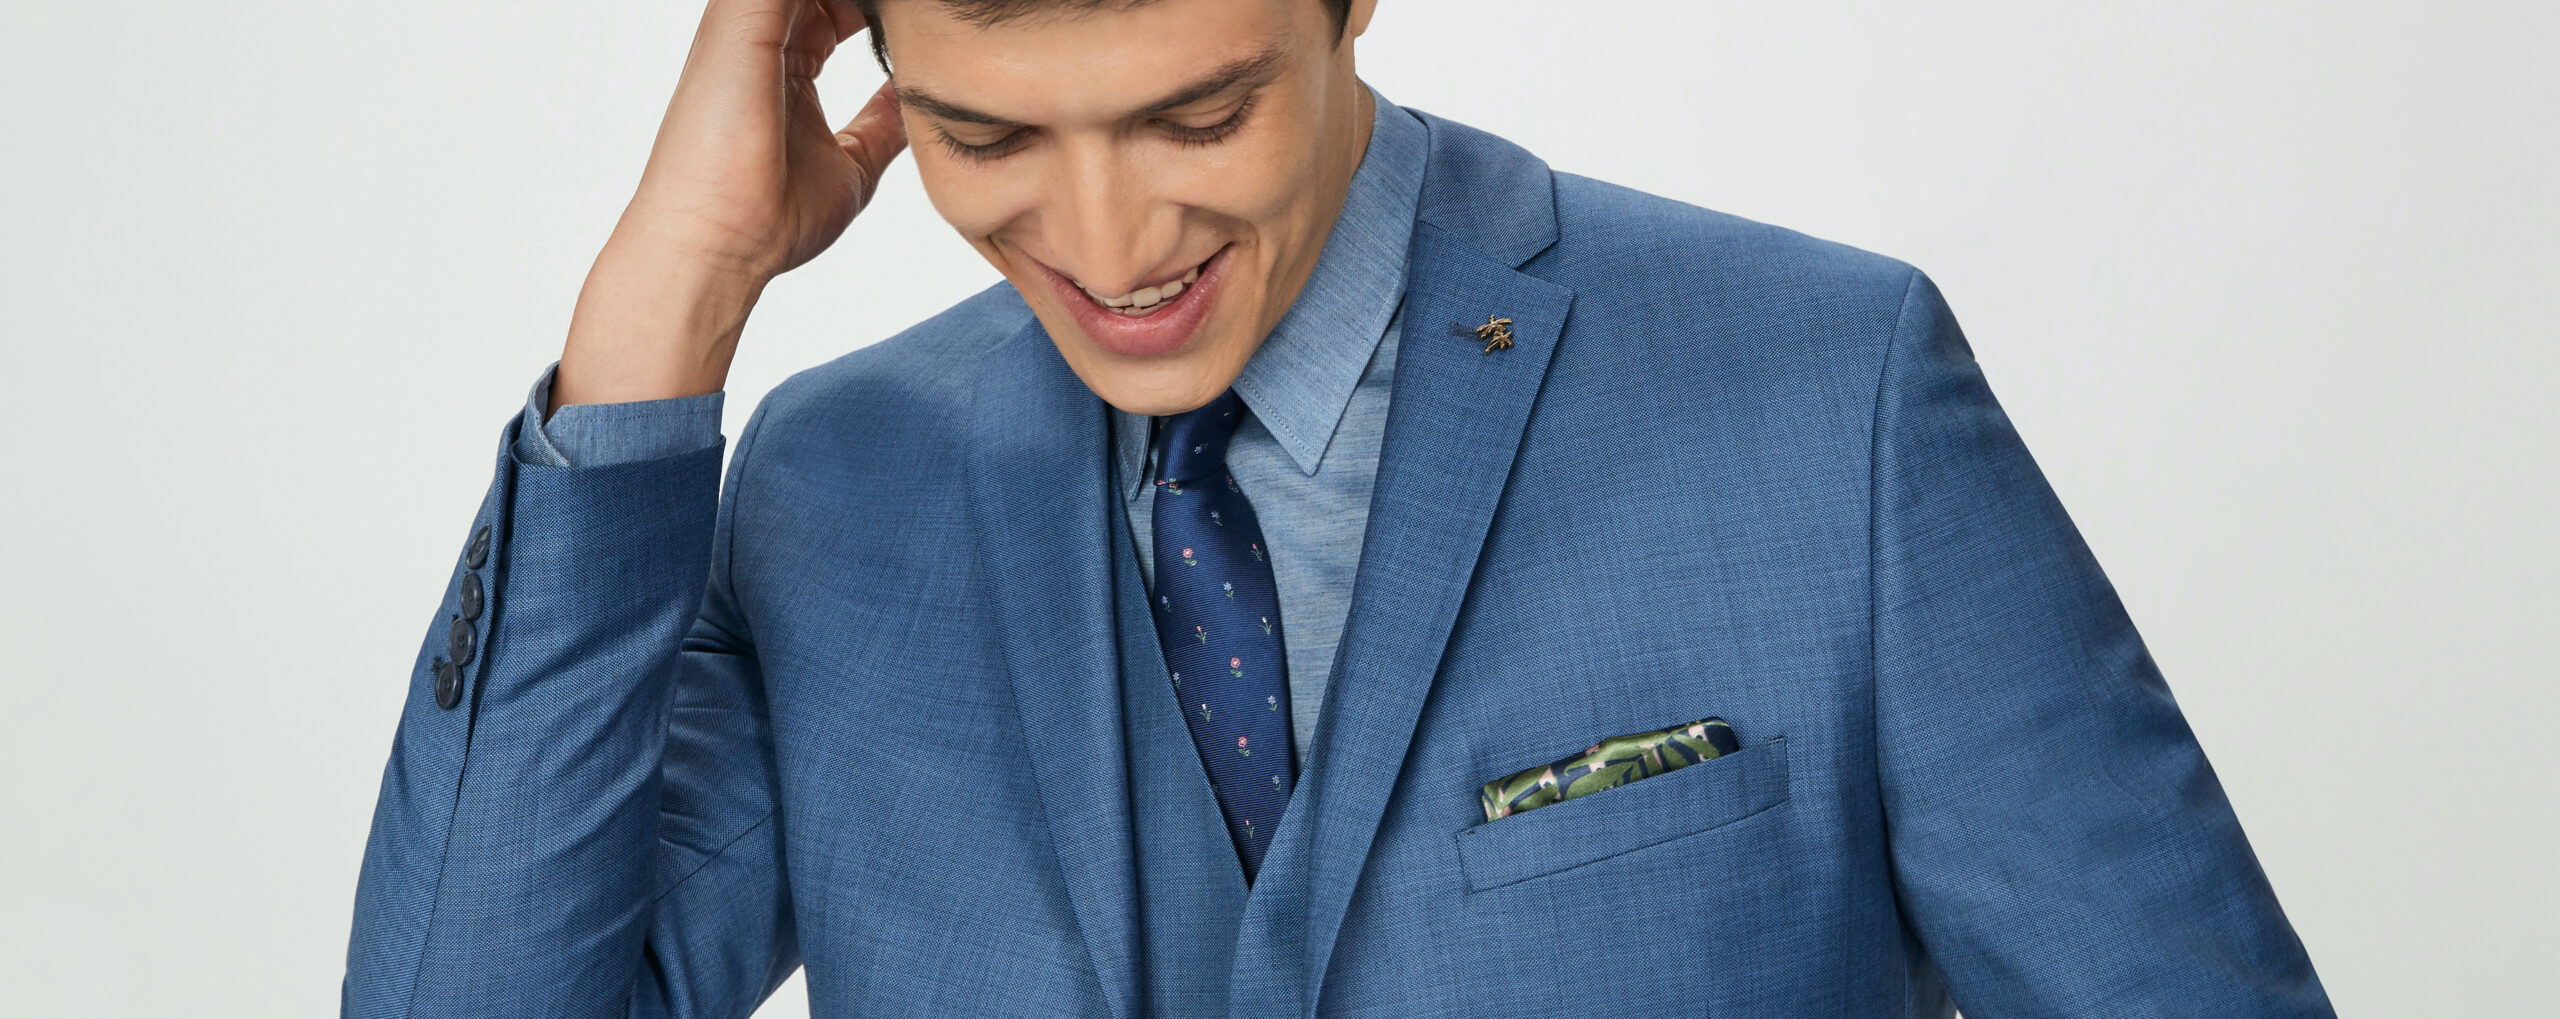 Baird Group signs major Ted Baker brand licence agreement